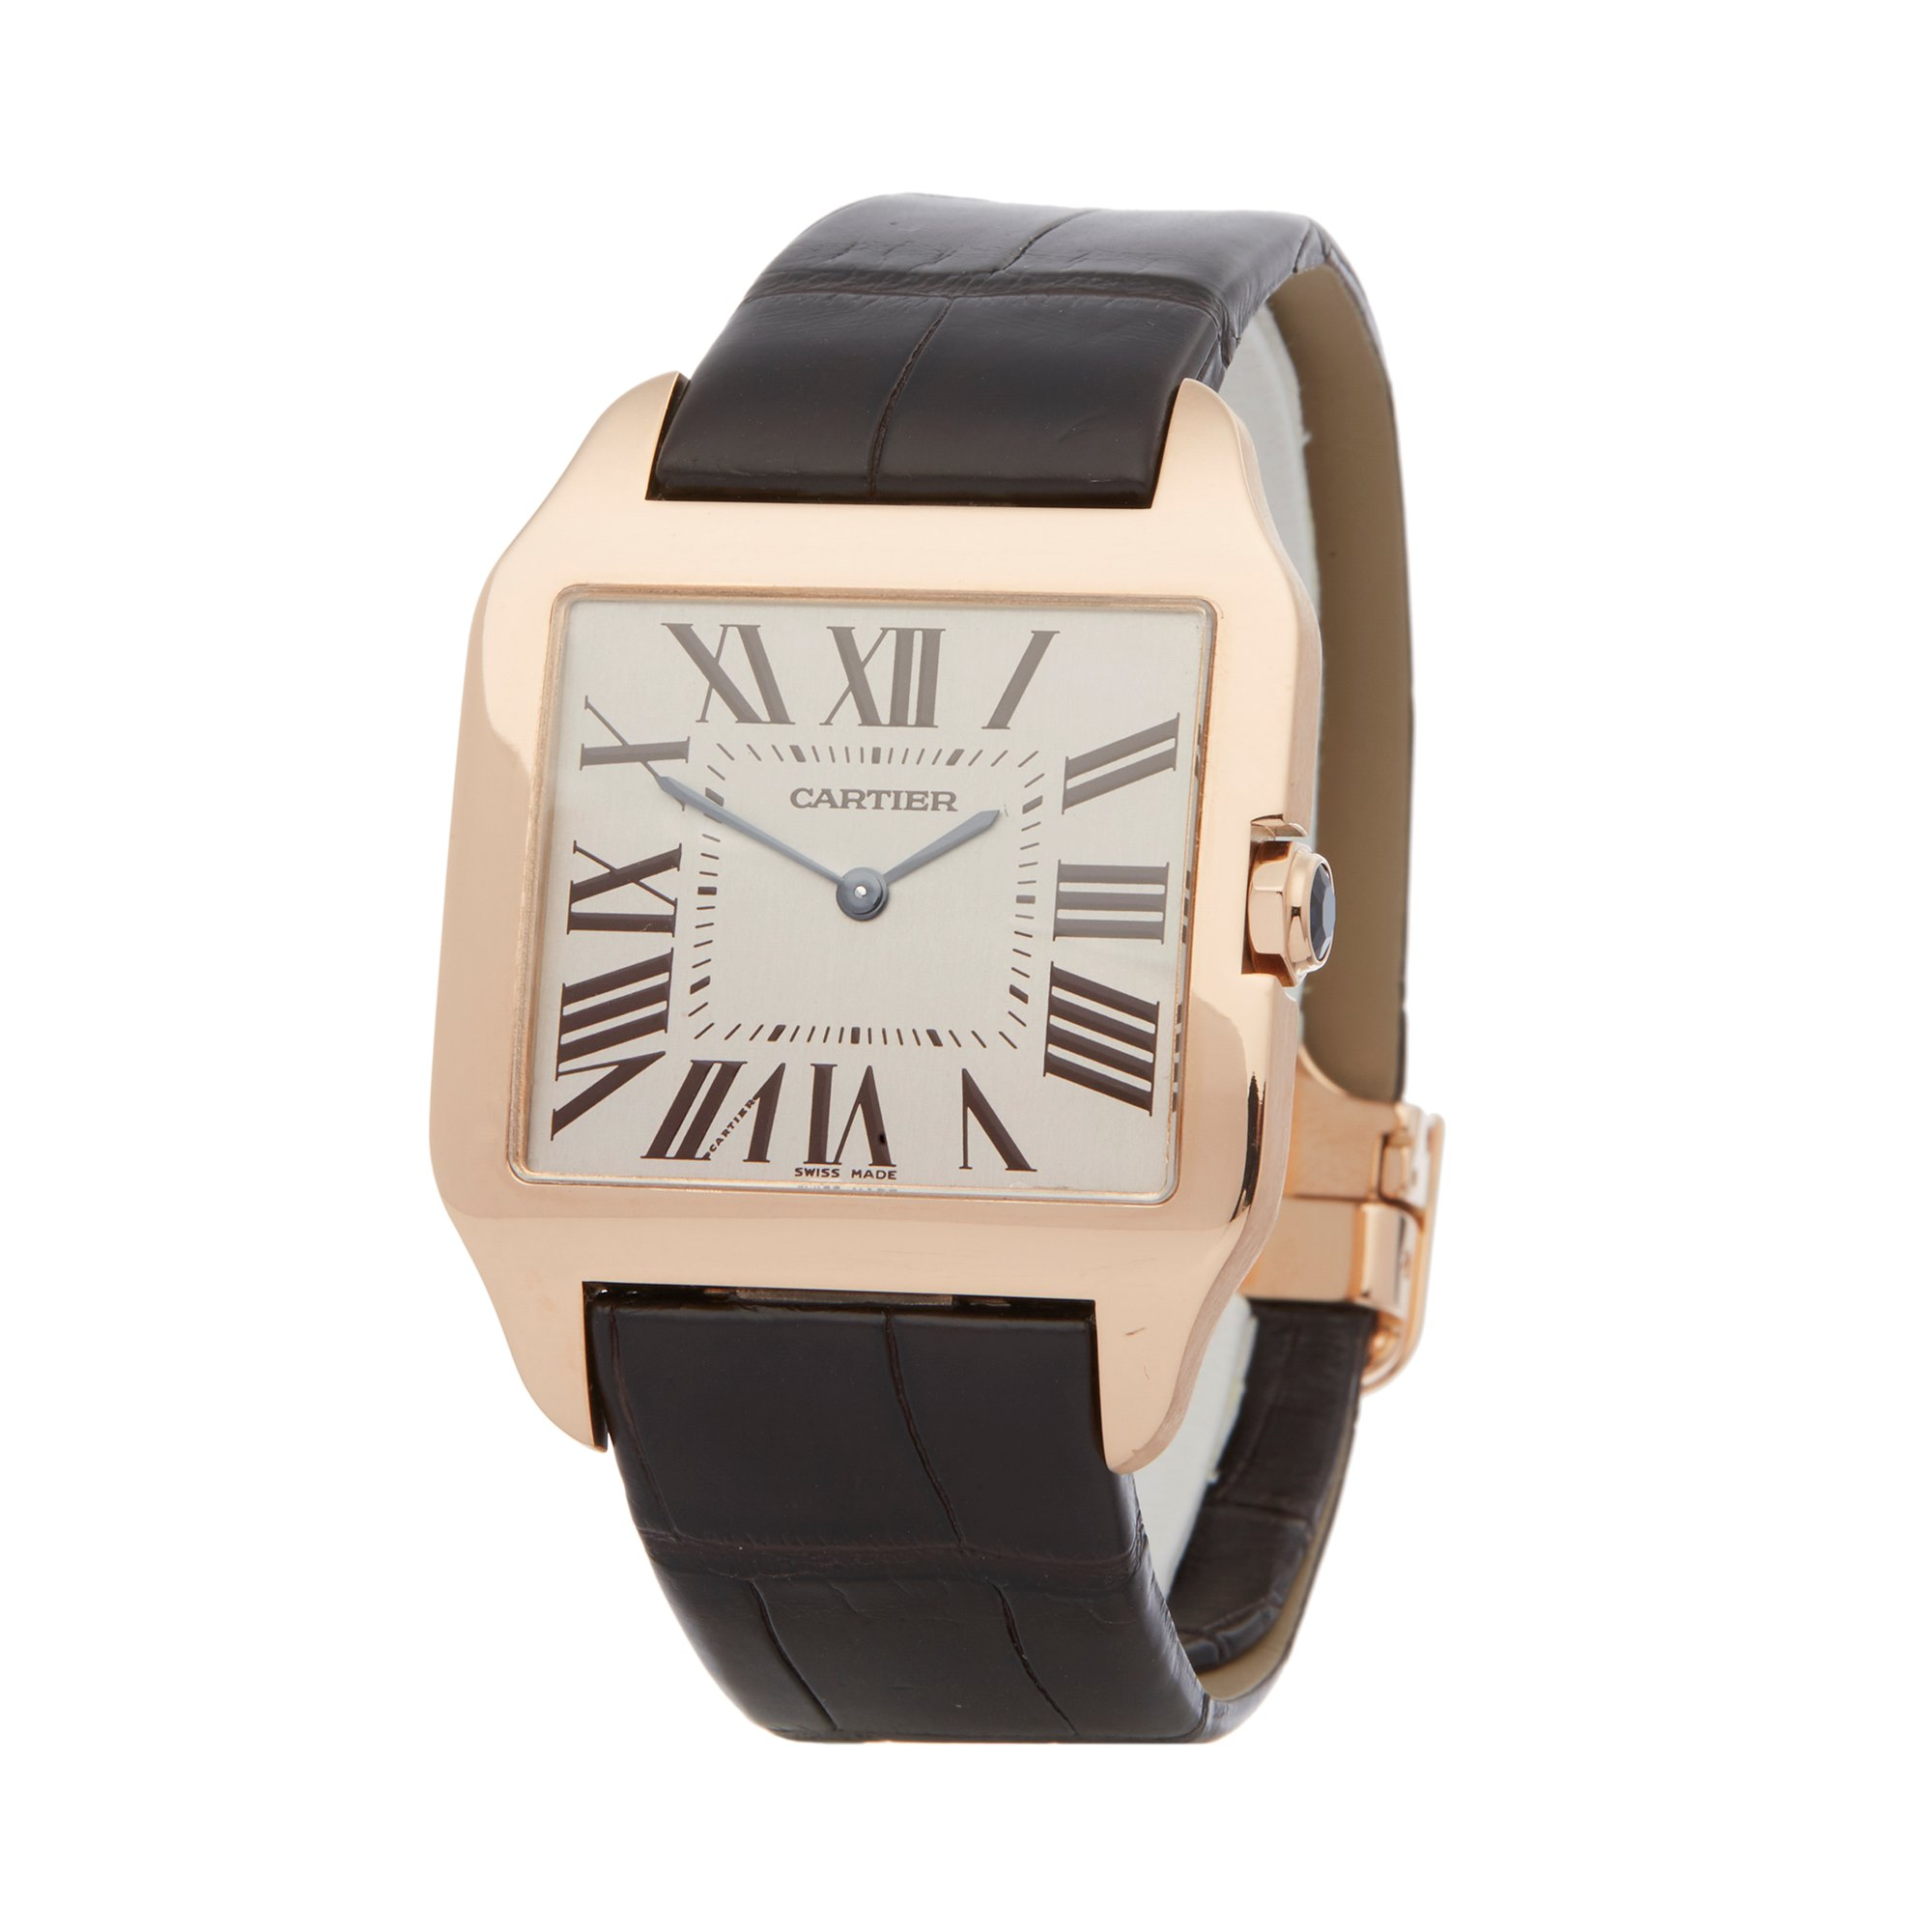 Cartier Santos Dumont 18k Rose Gold W2006951 or 2650